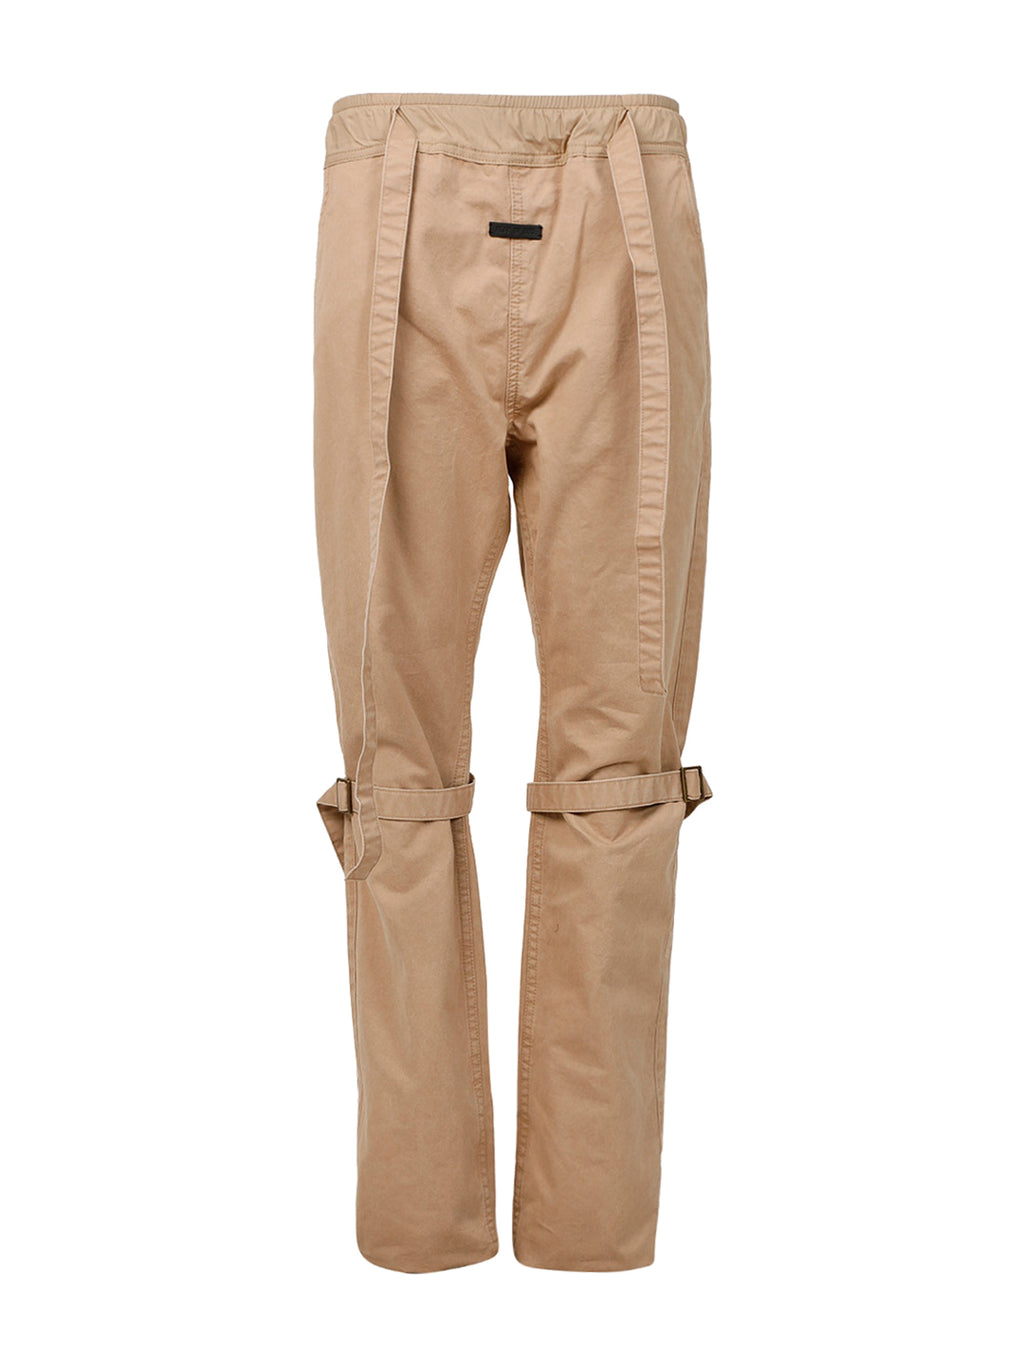 Washed Khaki Bondage Pants